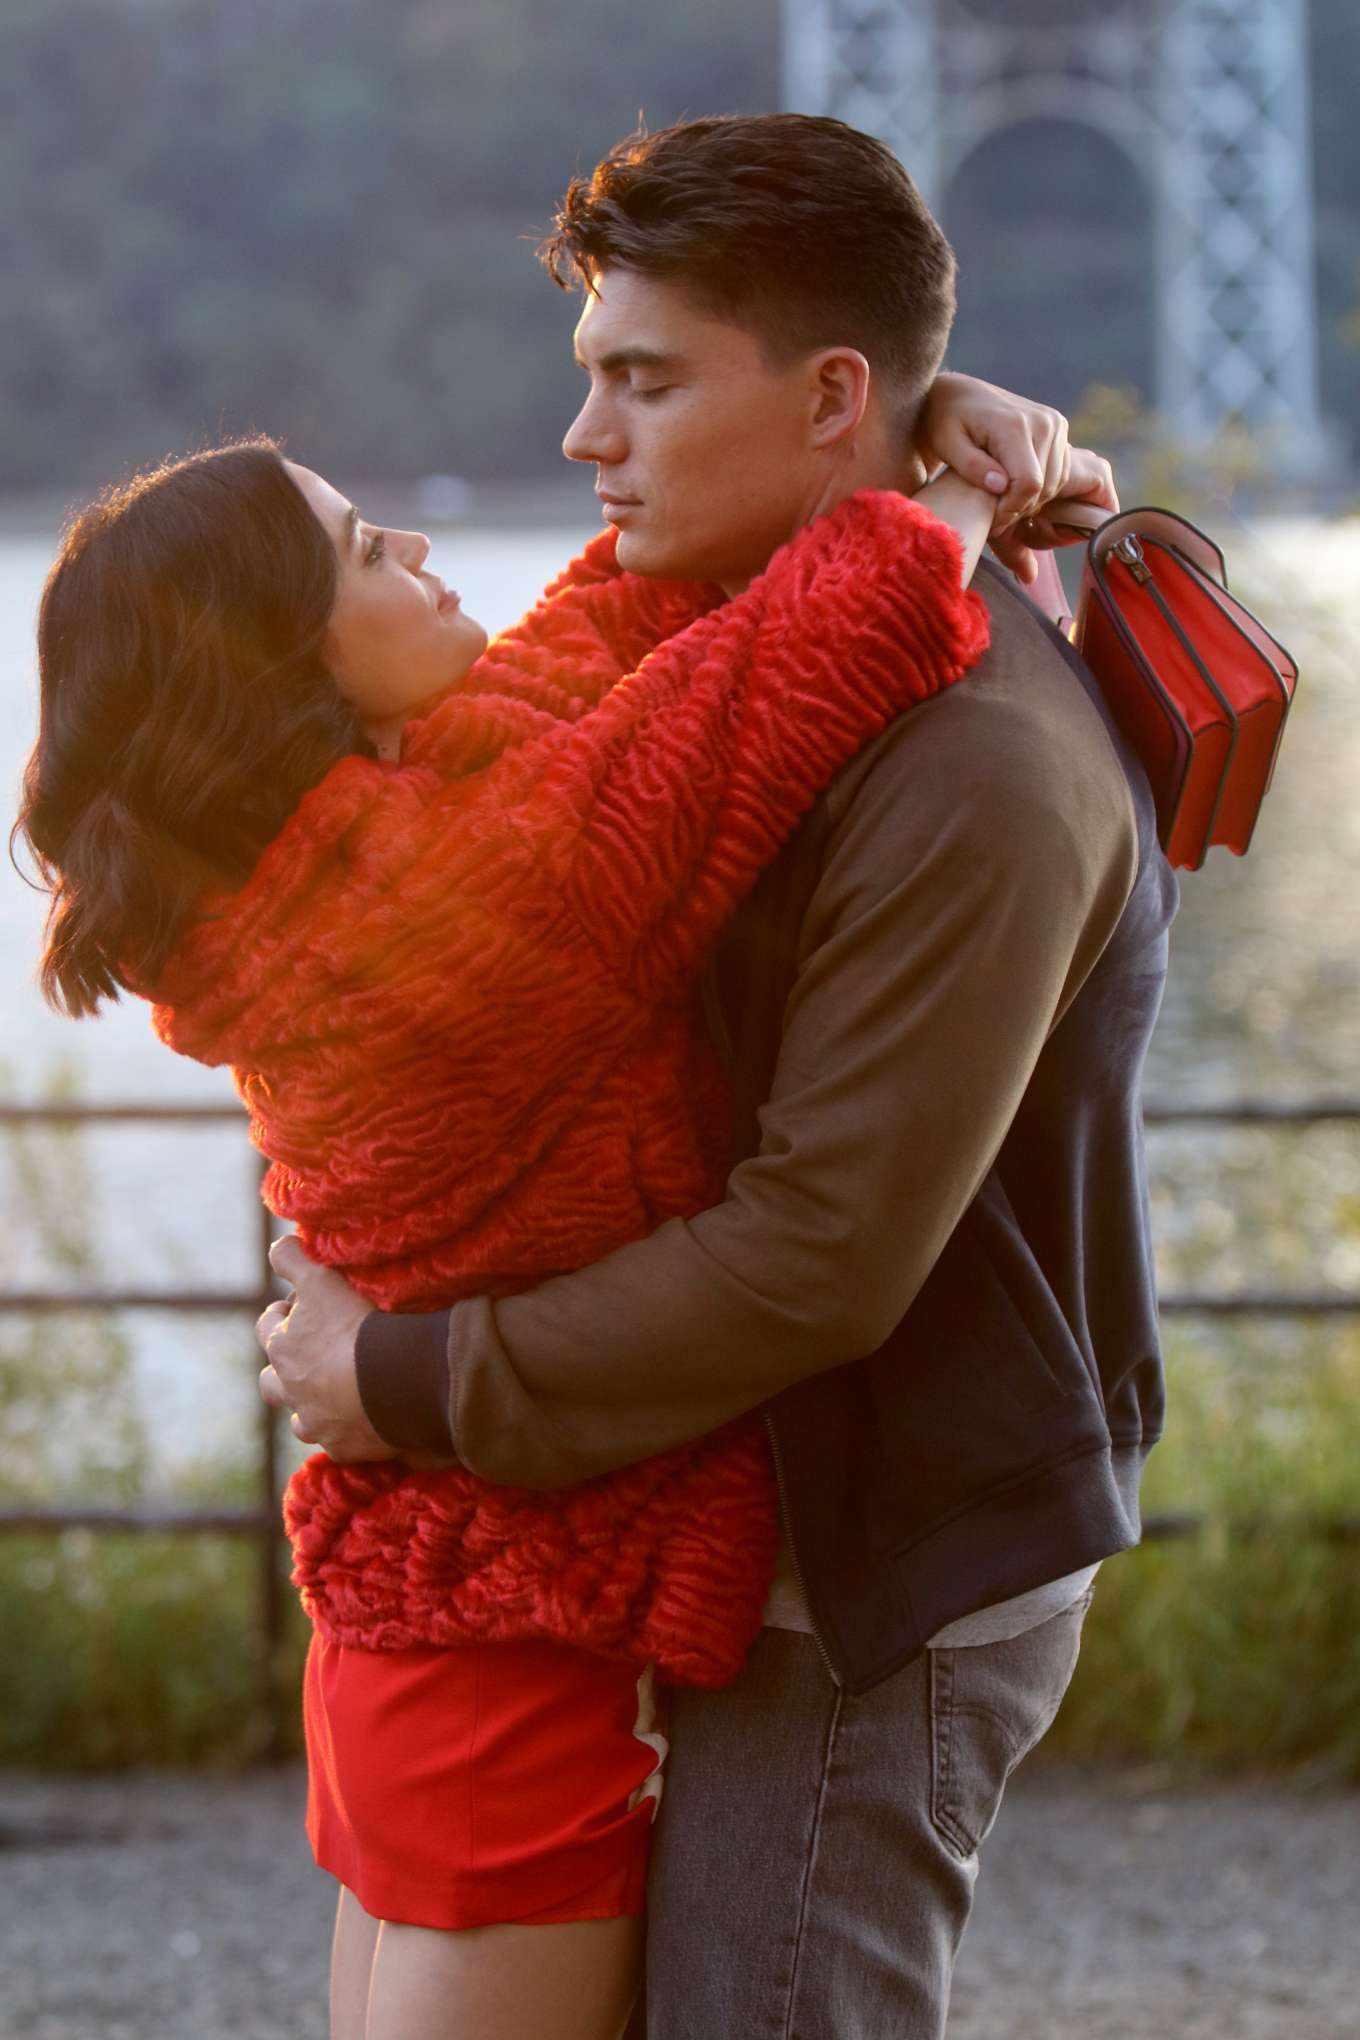 Lucy Hale - Kissing Zane Holtz during a scene on the 'Katy Keene' set in NY